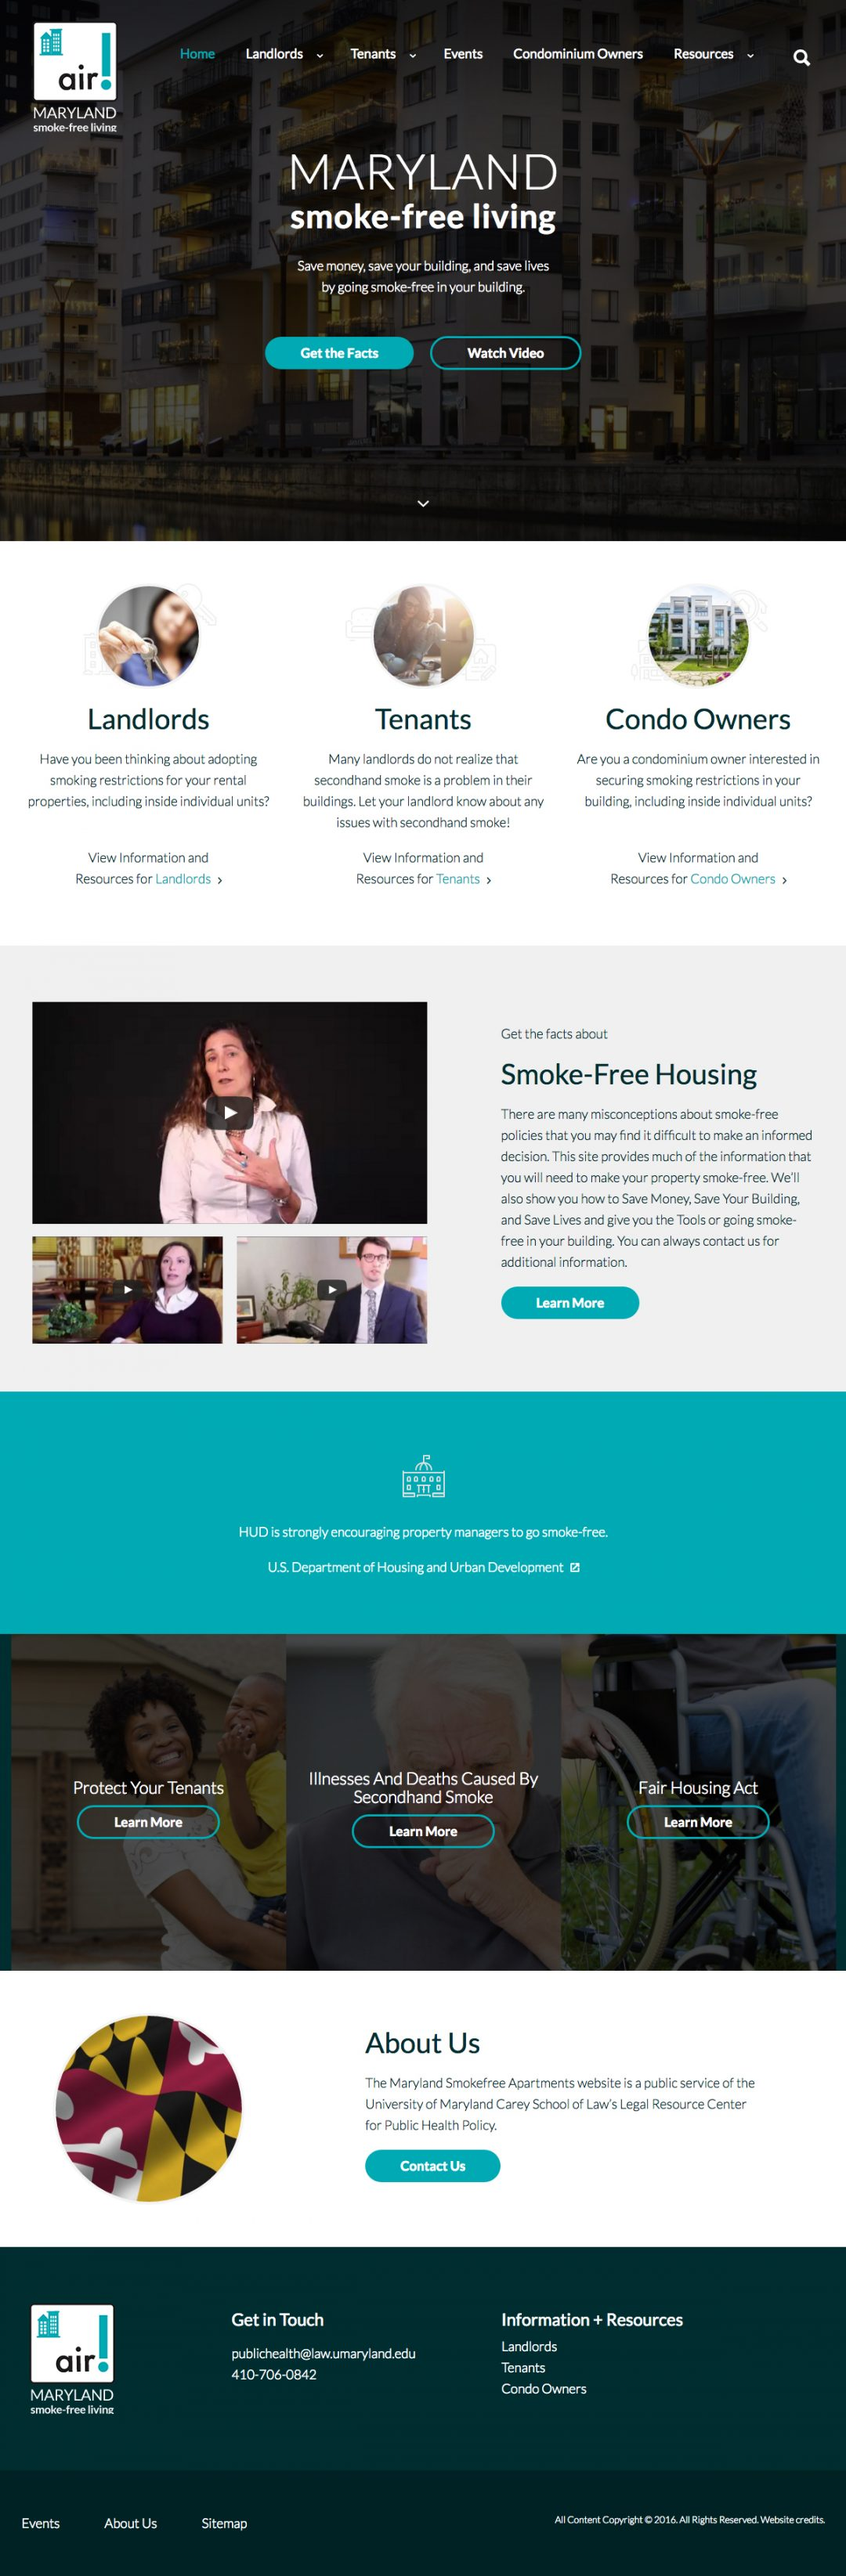 mdsmokefreeapartments.org home page